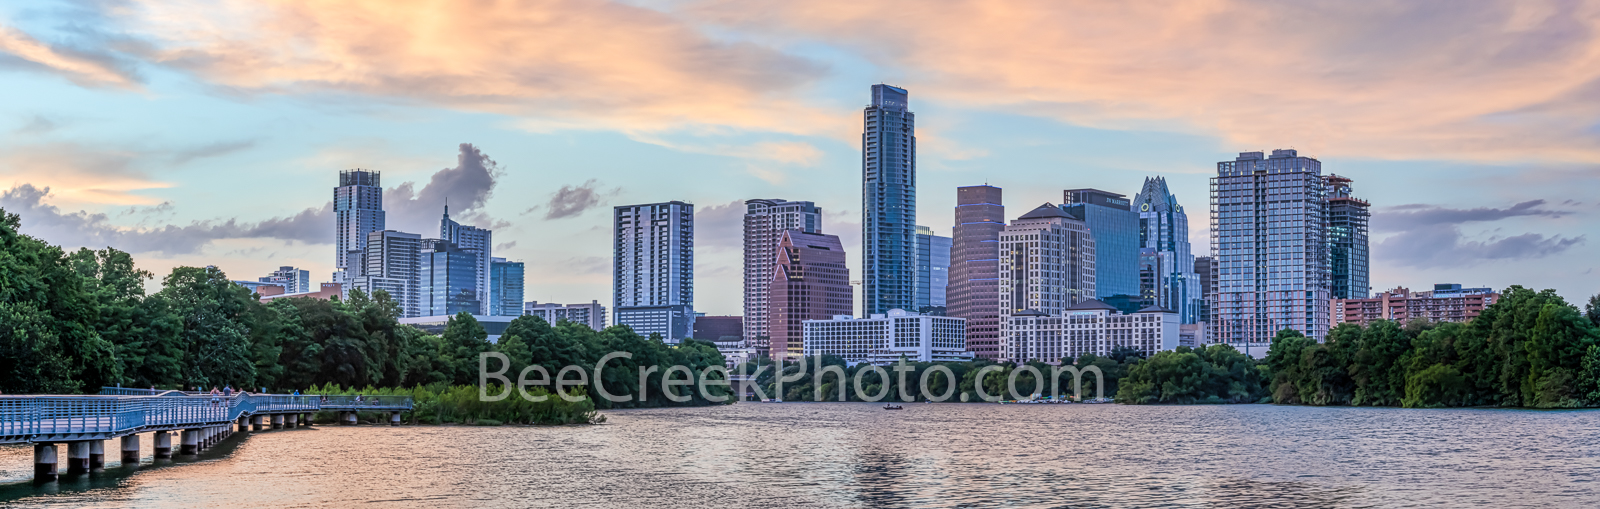 Austin Skyline Sunset Pano 2019 - Austin skyline as the sunset leaves this pink glow over Lady Bird Lake shoreline from the boardwalk...